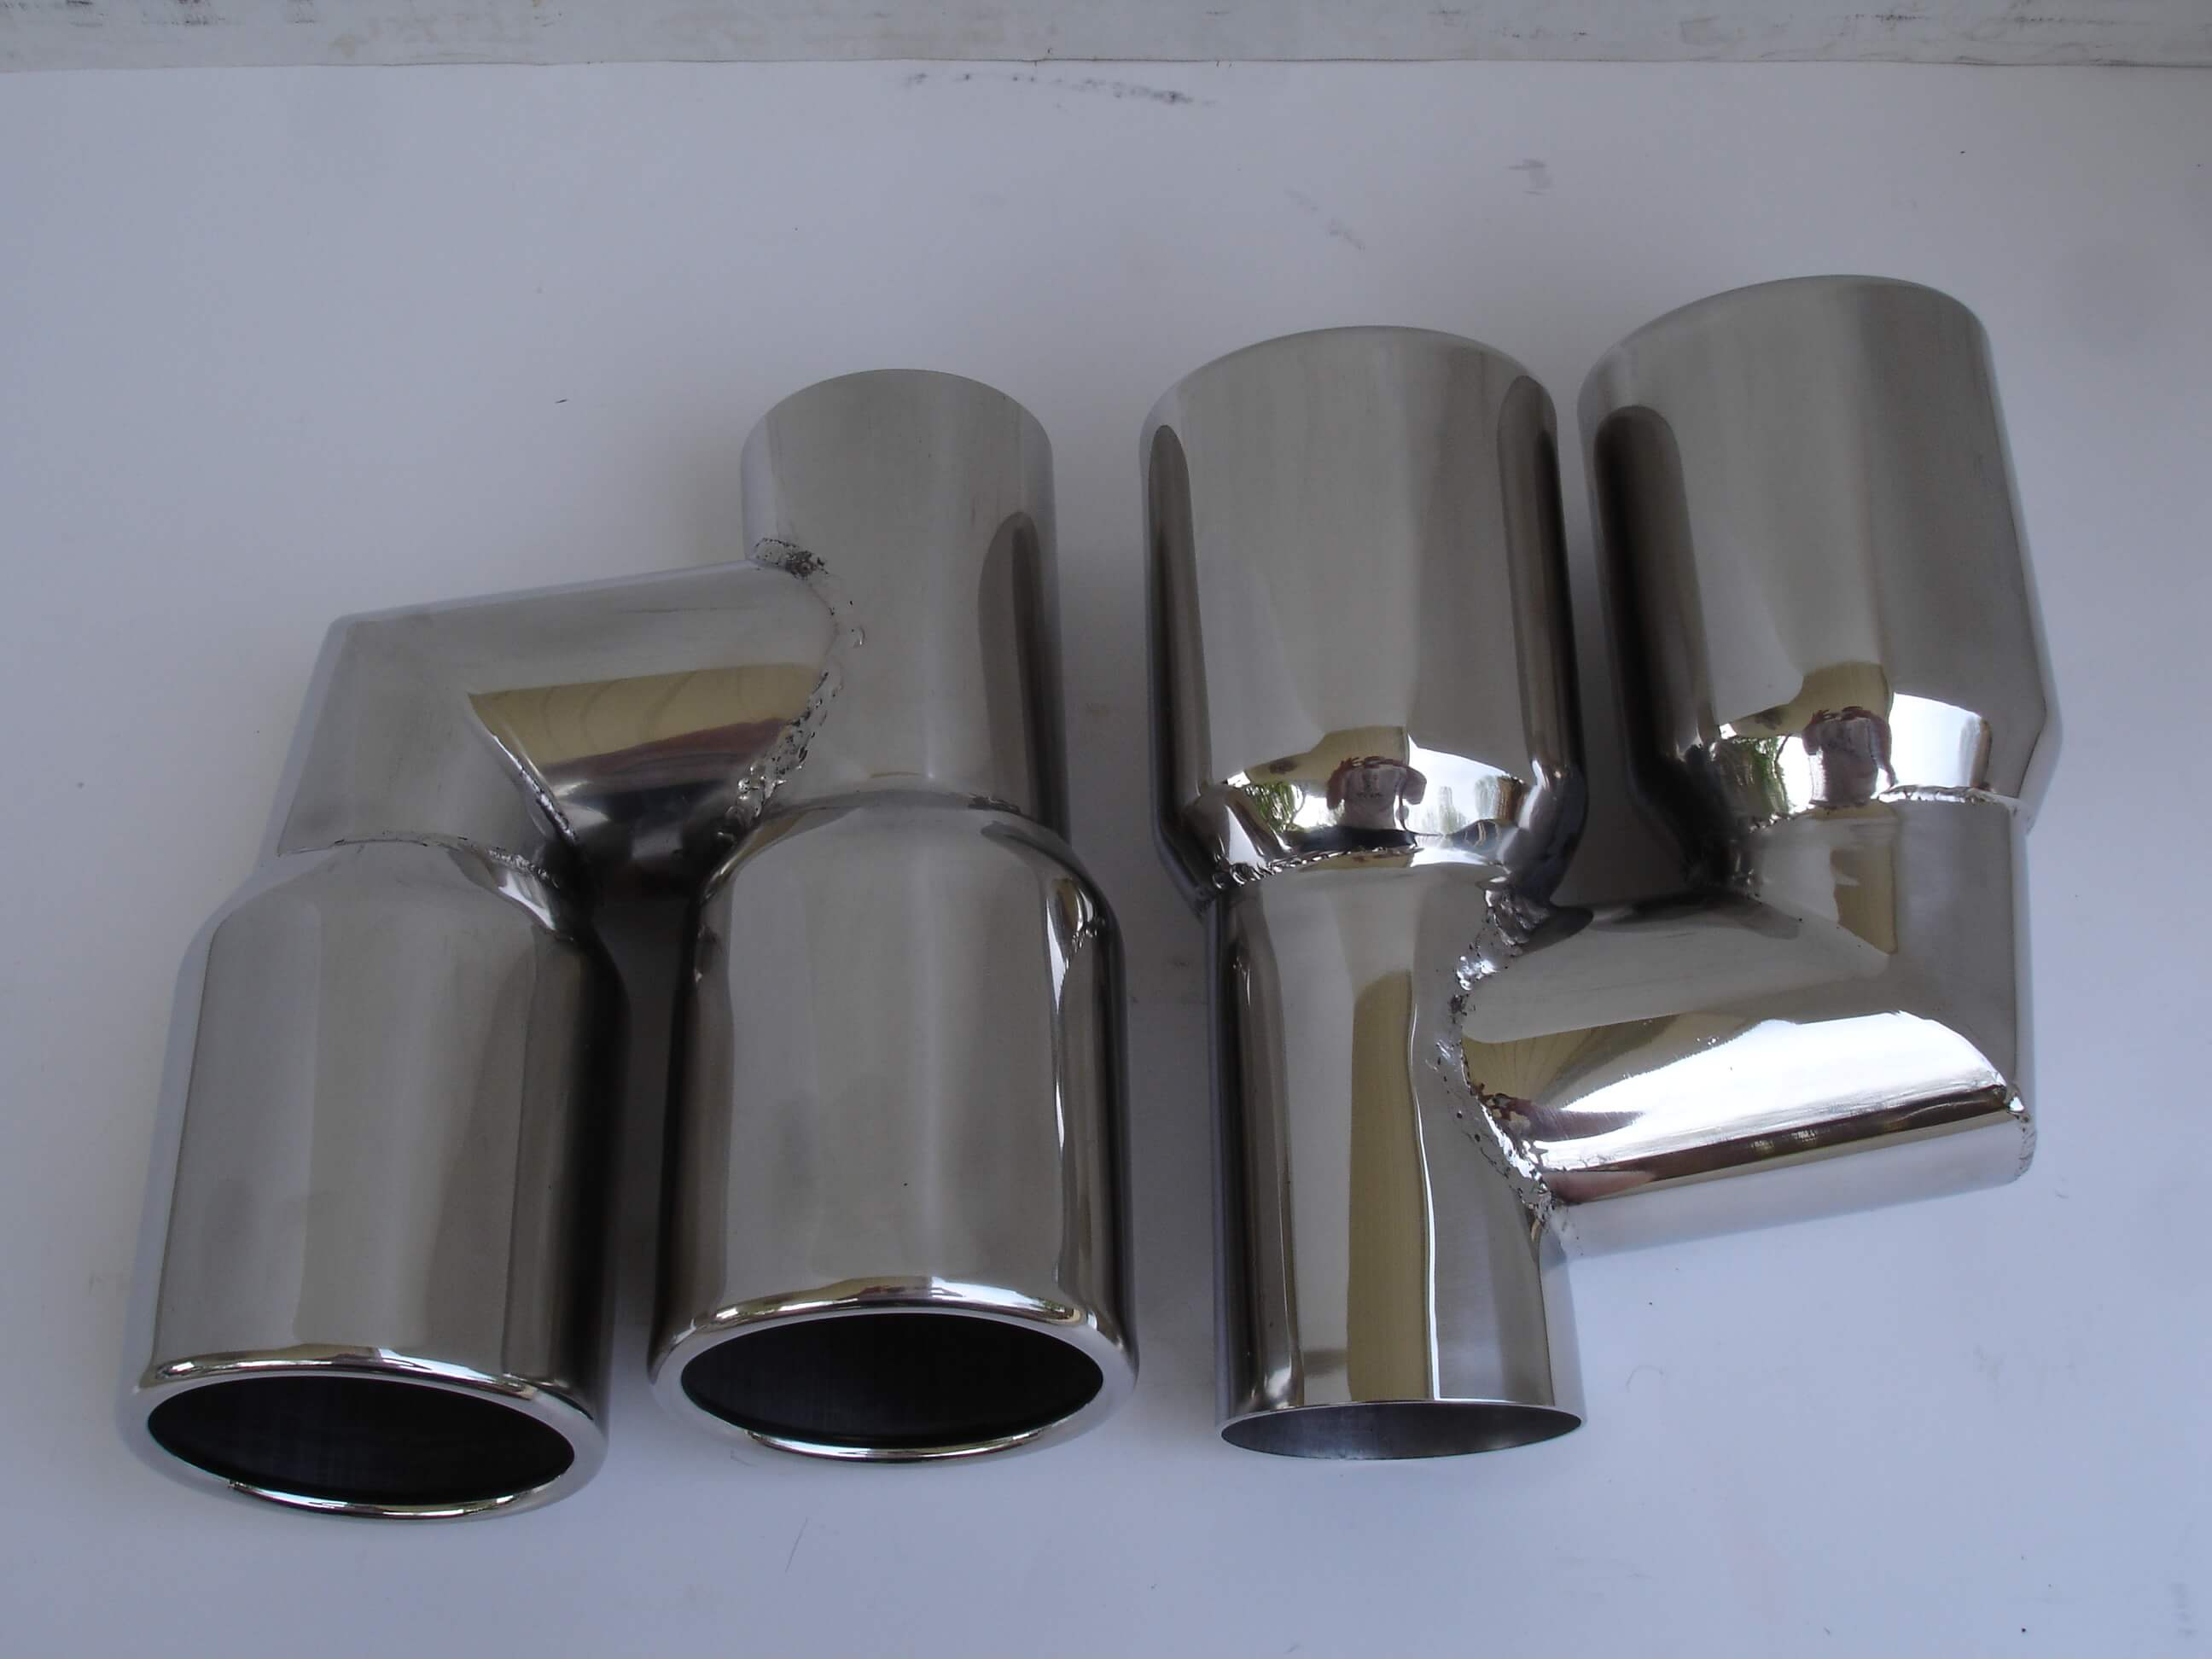 Audi A4 A5 A6 A7 A8 S4 S5 S6 S7 S8 Exhaust Tips Tailpipes 3""